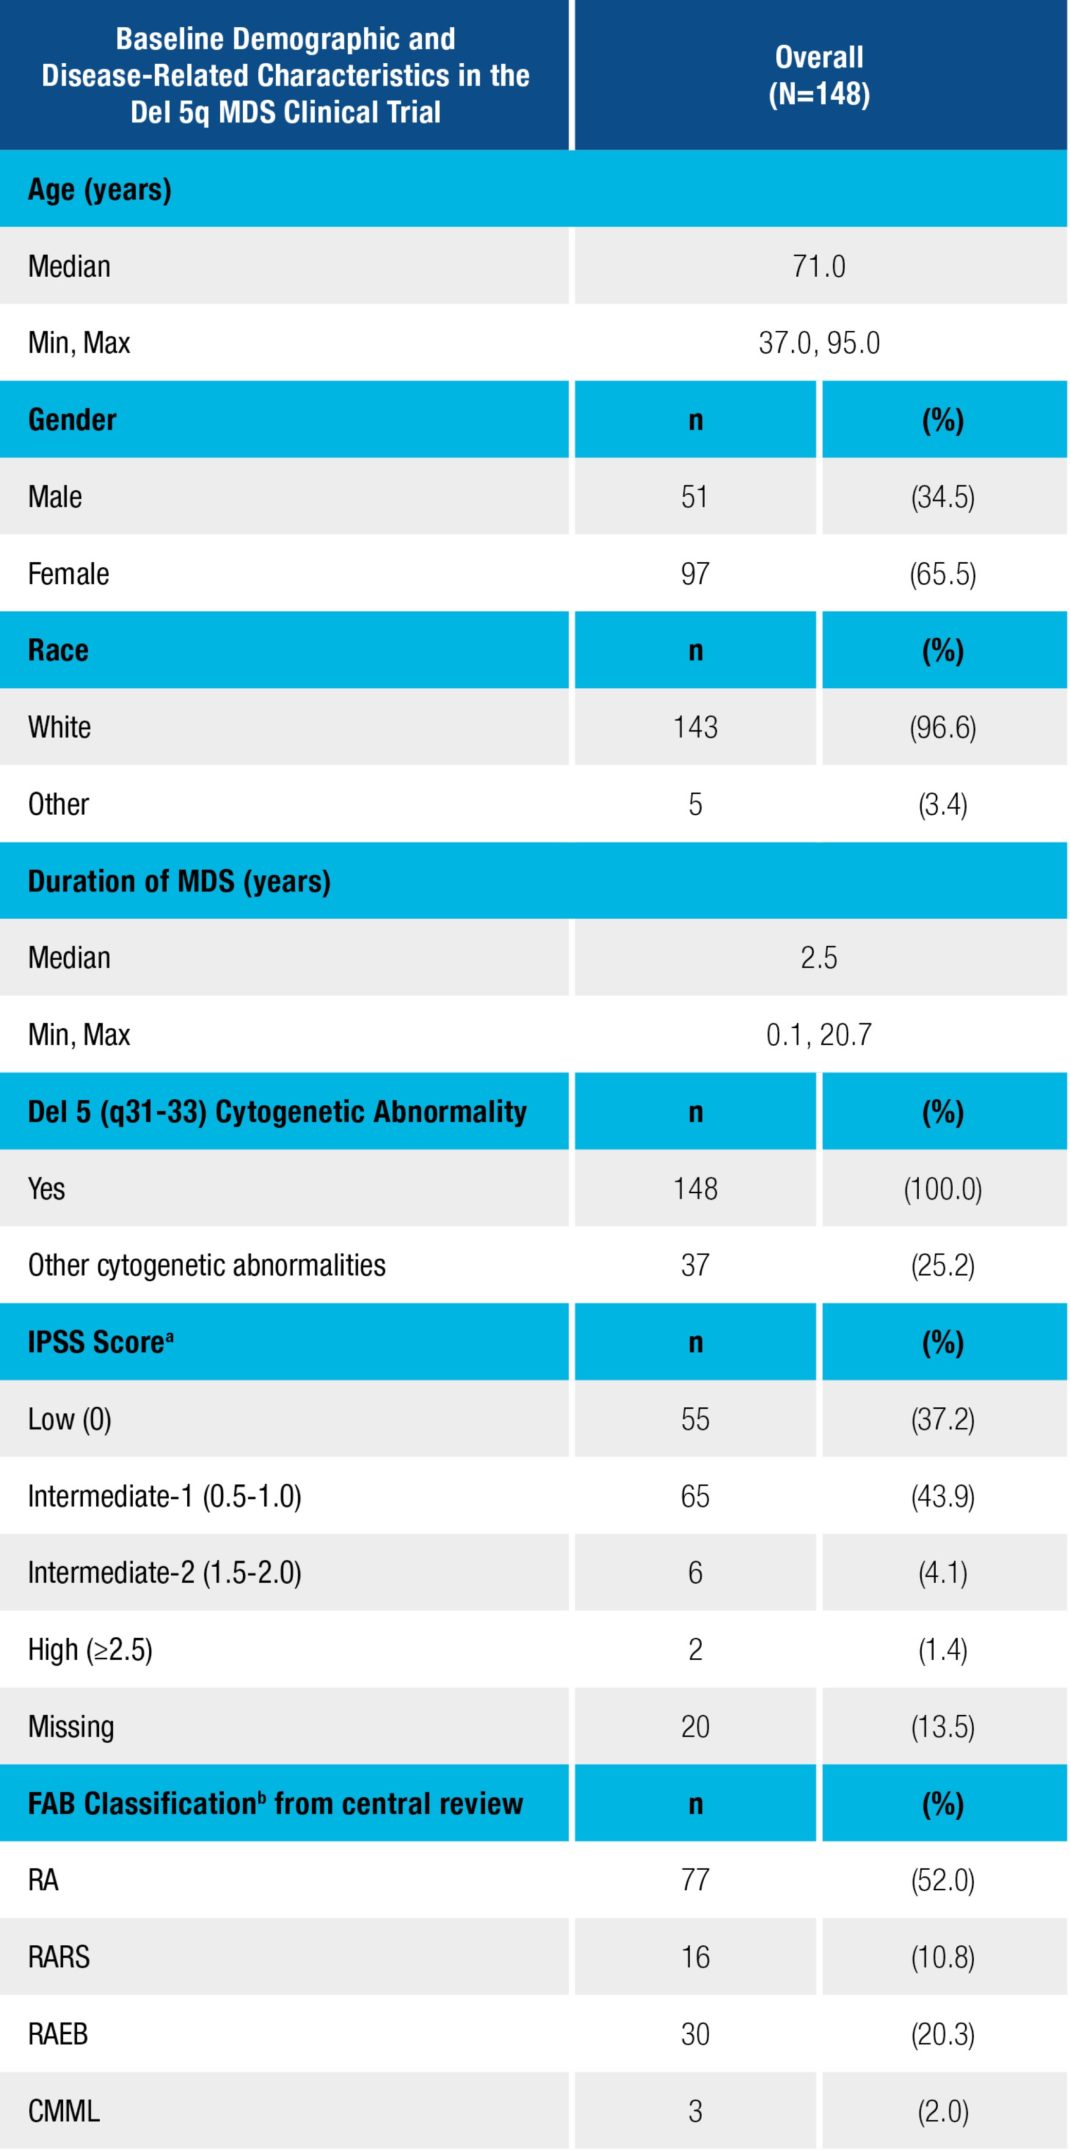 Baseline Demographic and Disease-Related Characteristics in the Del 5q MDS Clinical Trial – Overall (N=148)